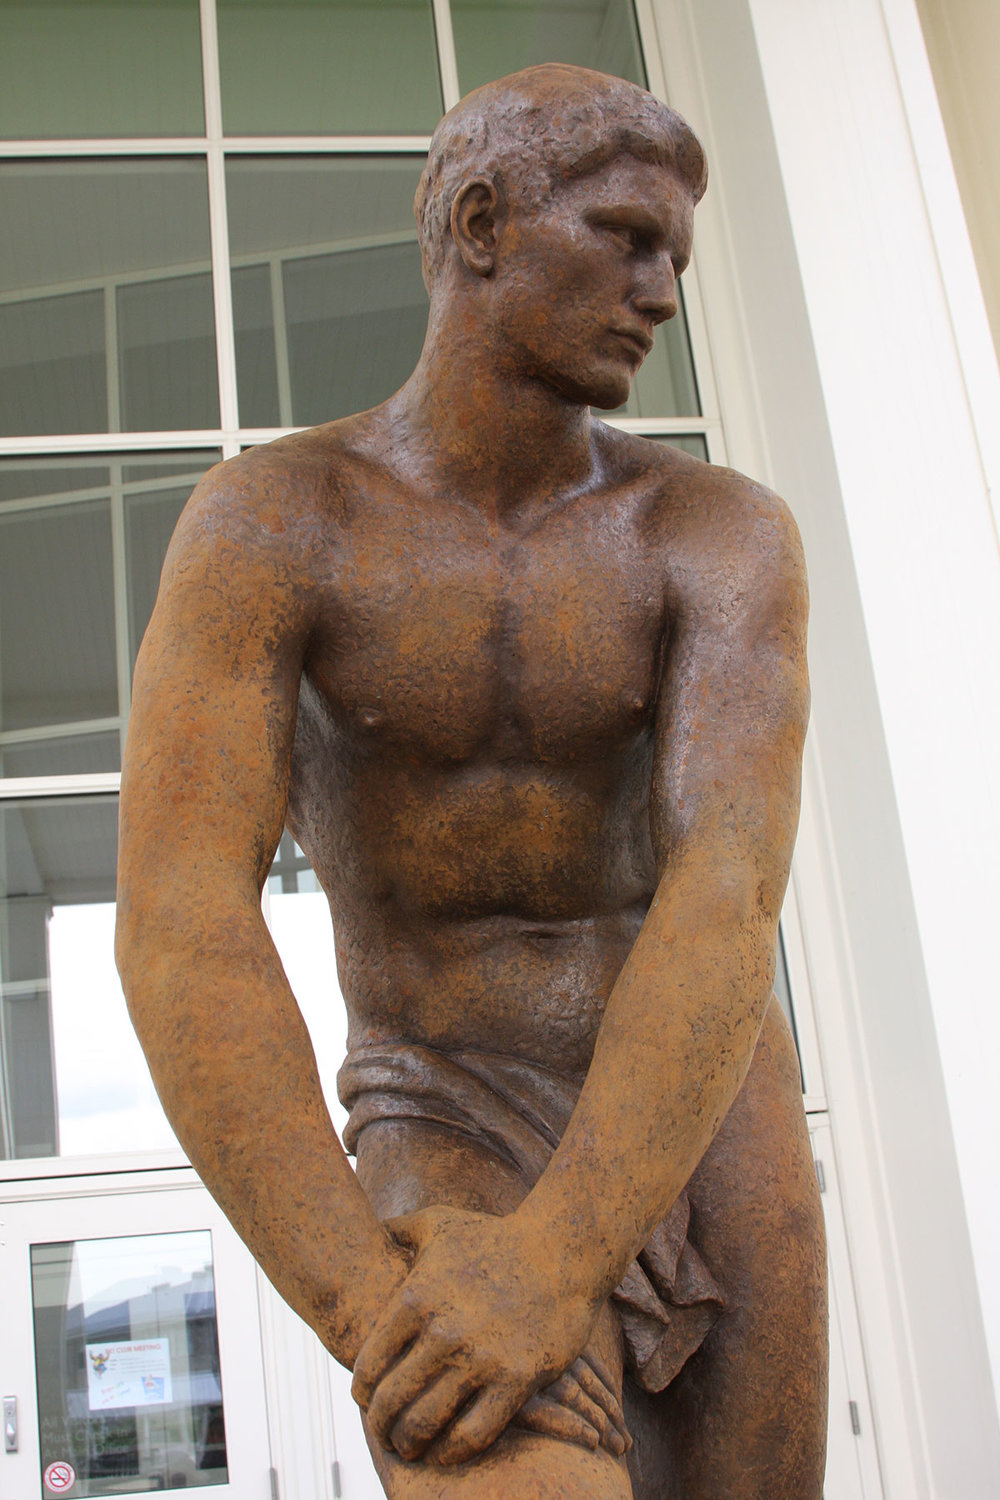 Before: bronze sculpture with patination damage